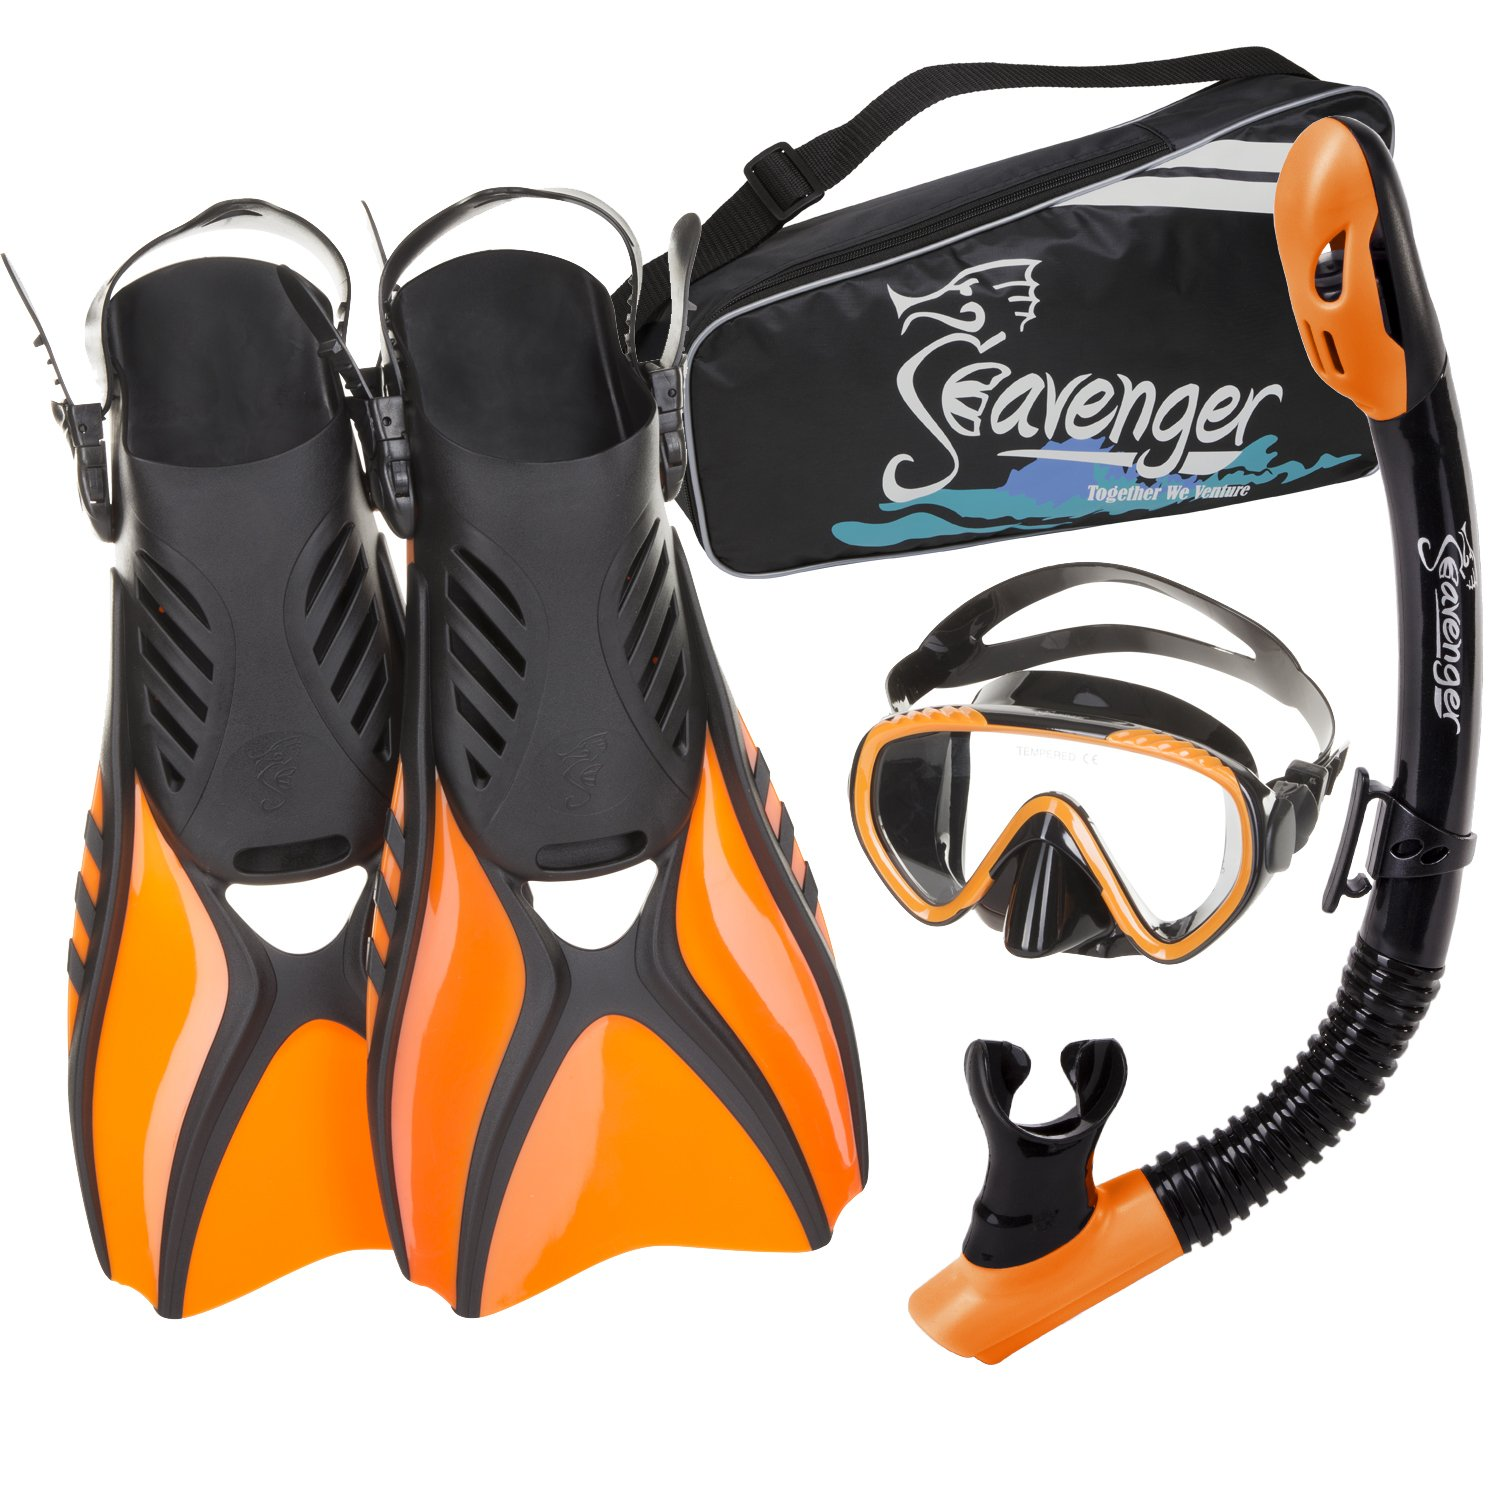 Seavenger Advanced Snorkeling Set with Panoramic Mask, Trek Fins, Dry Top Snorkel & Gear Bag (Black Silicone/Orange, X-Small)